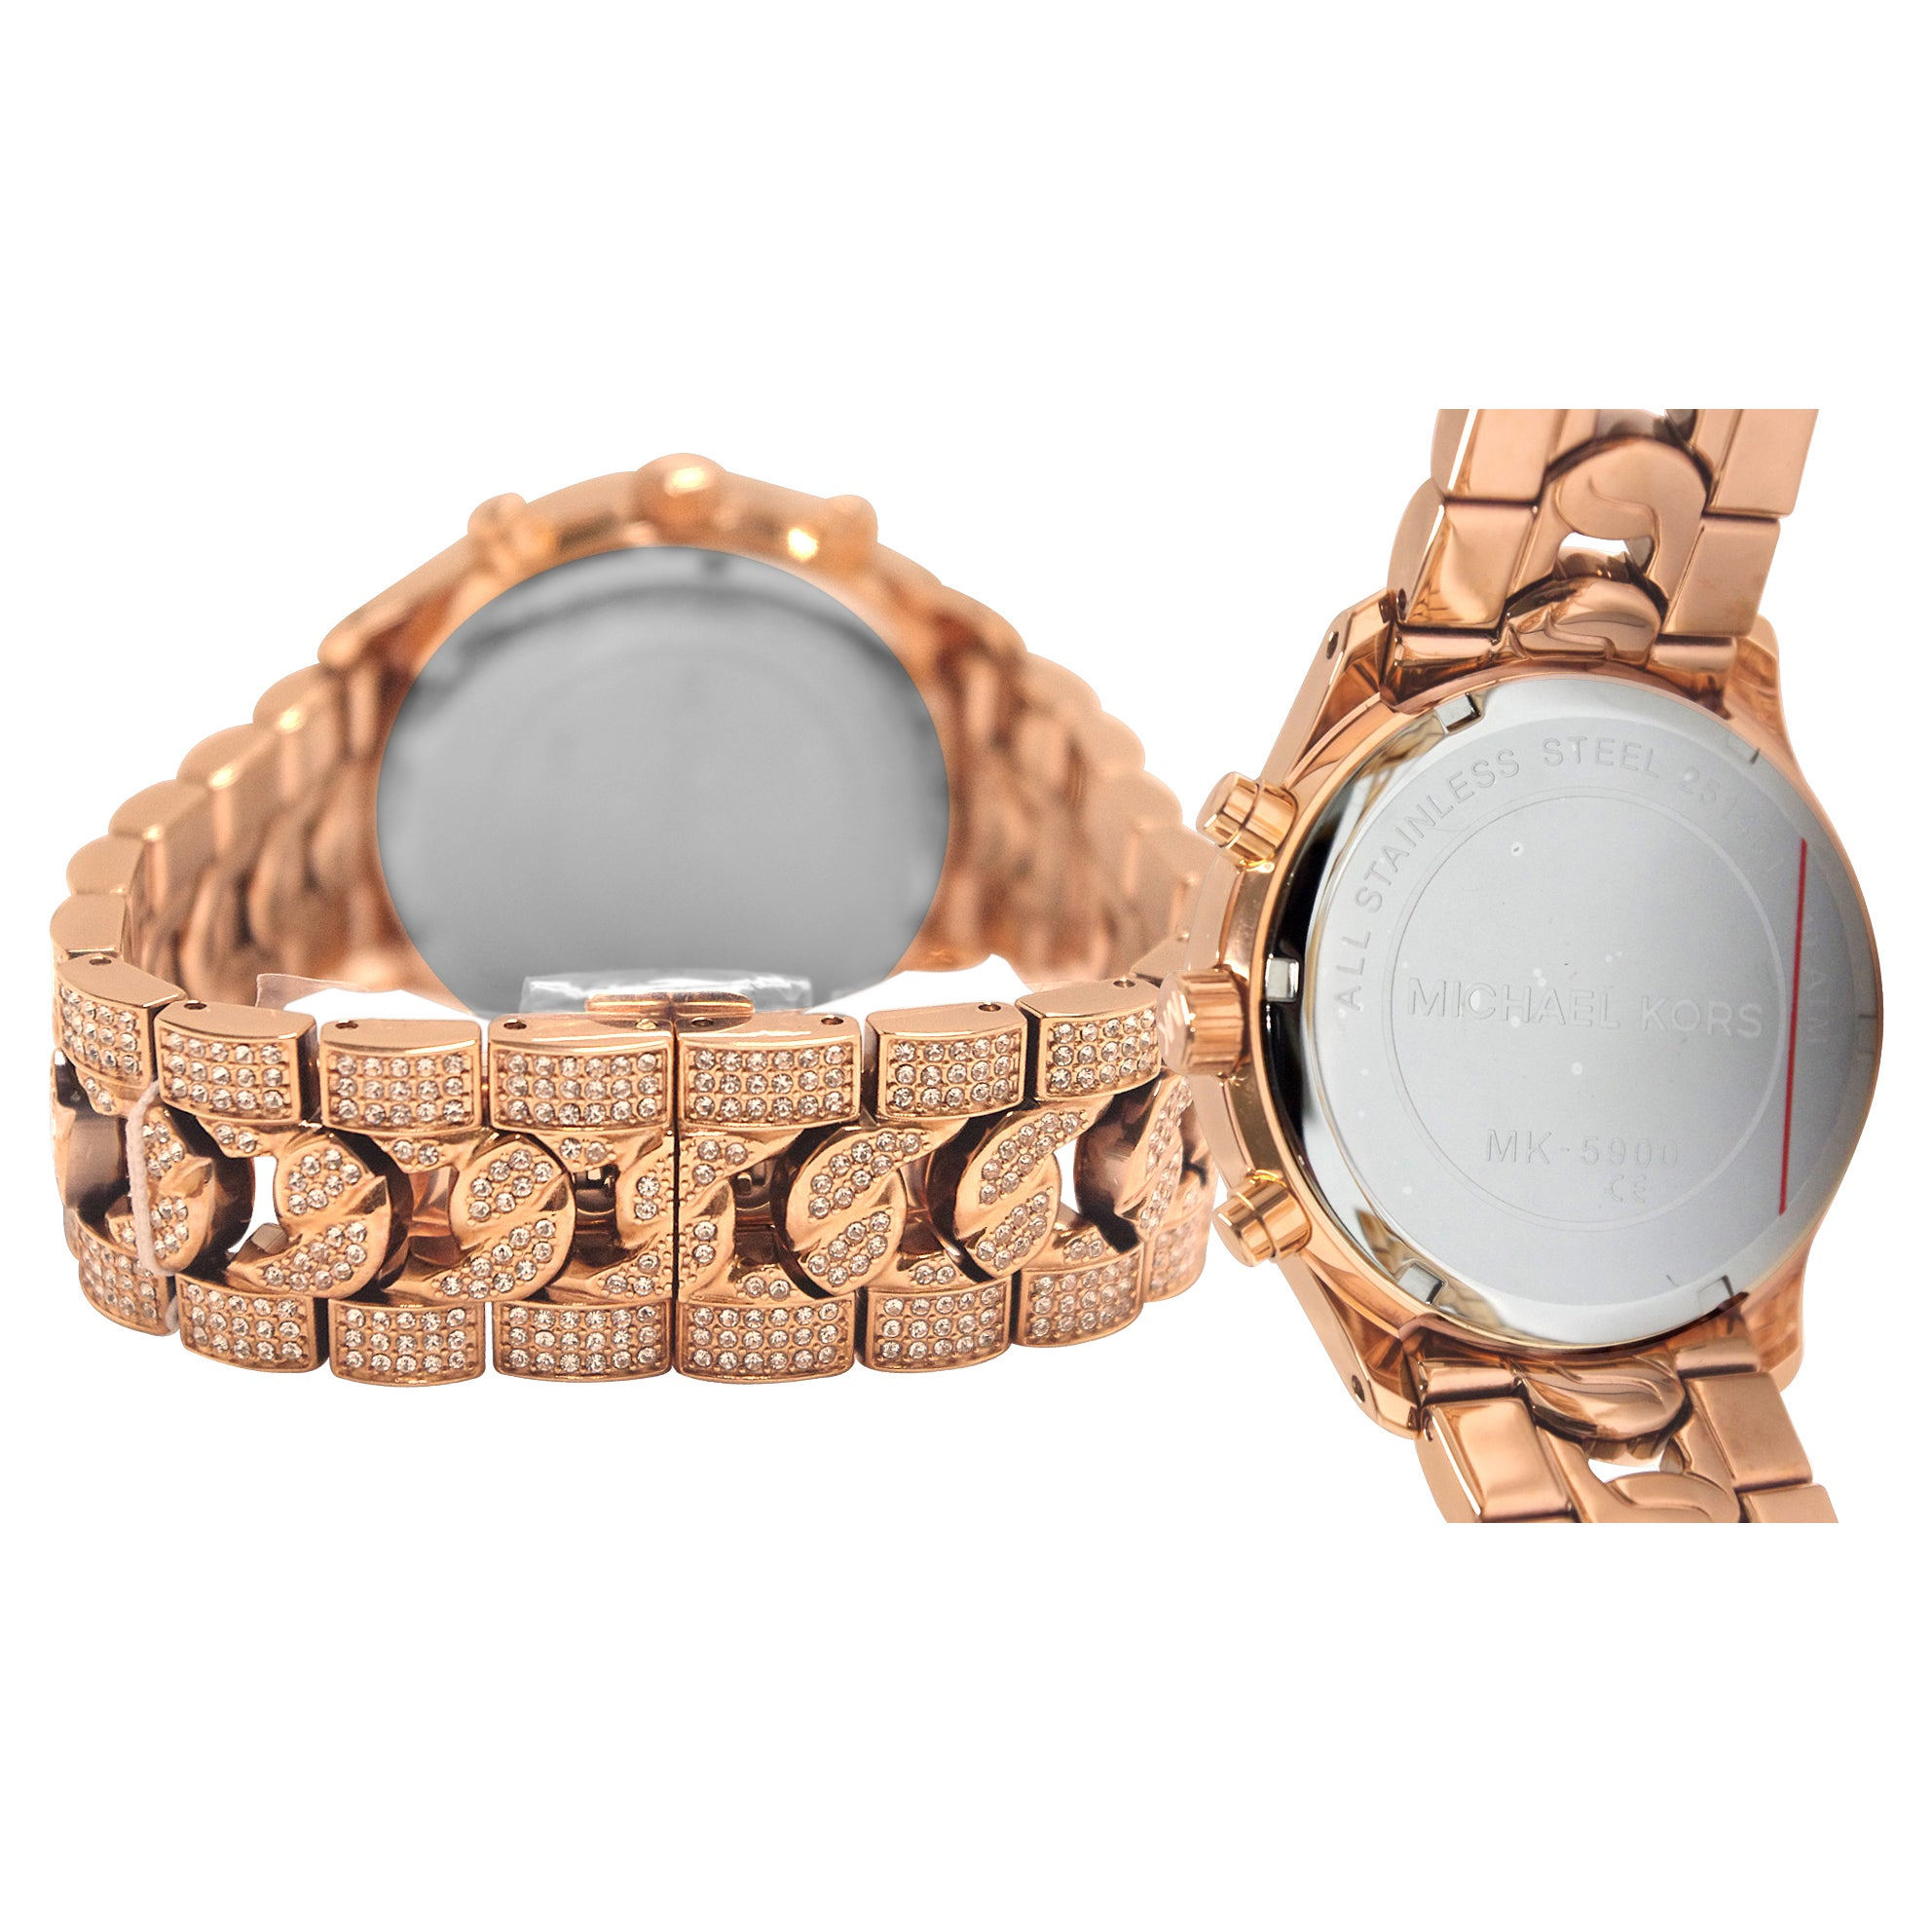 af8ff99cad1a Shop Michael Kors Women s MK5900 Lindley Chronograph Rose Crystal Pave Dial  Watch - Free Shipping Today - Overstock - 9193781